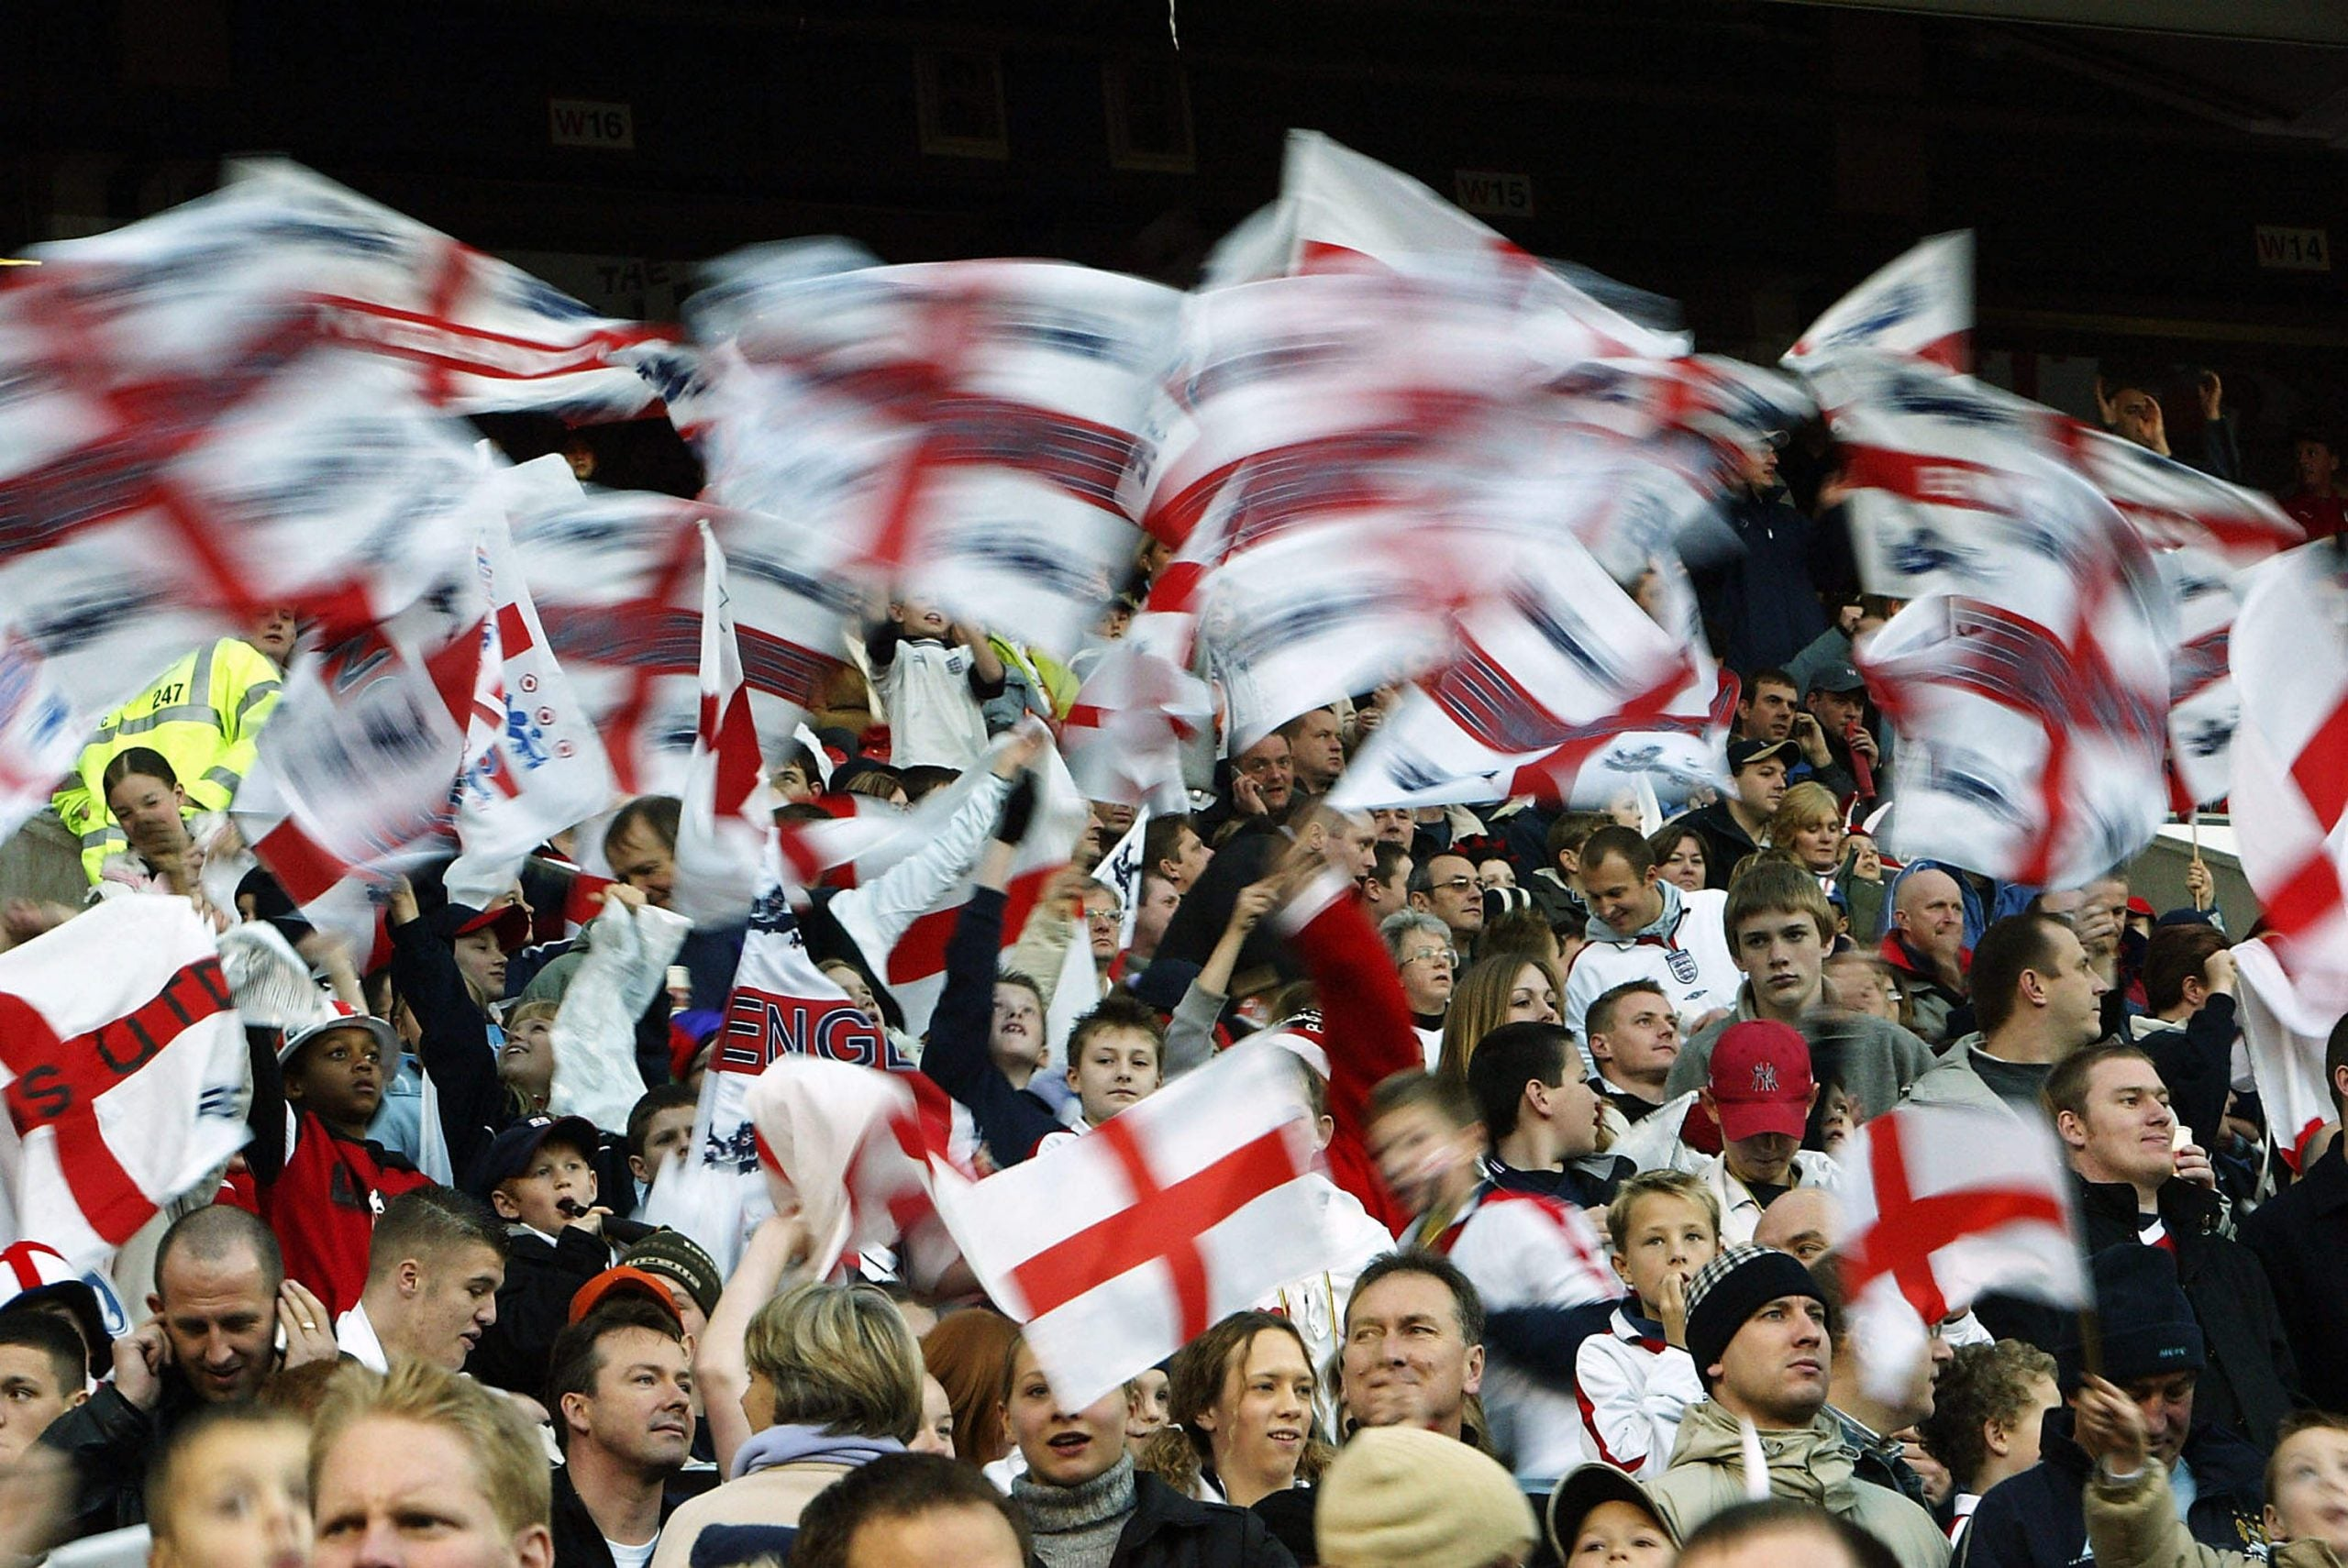 My England, our England: how Euro 2016 can unite a nation in patriotism